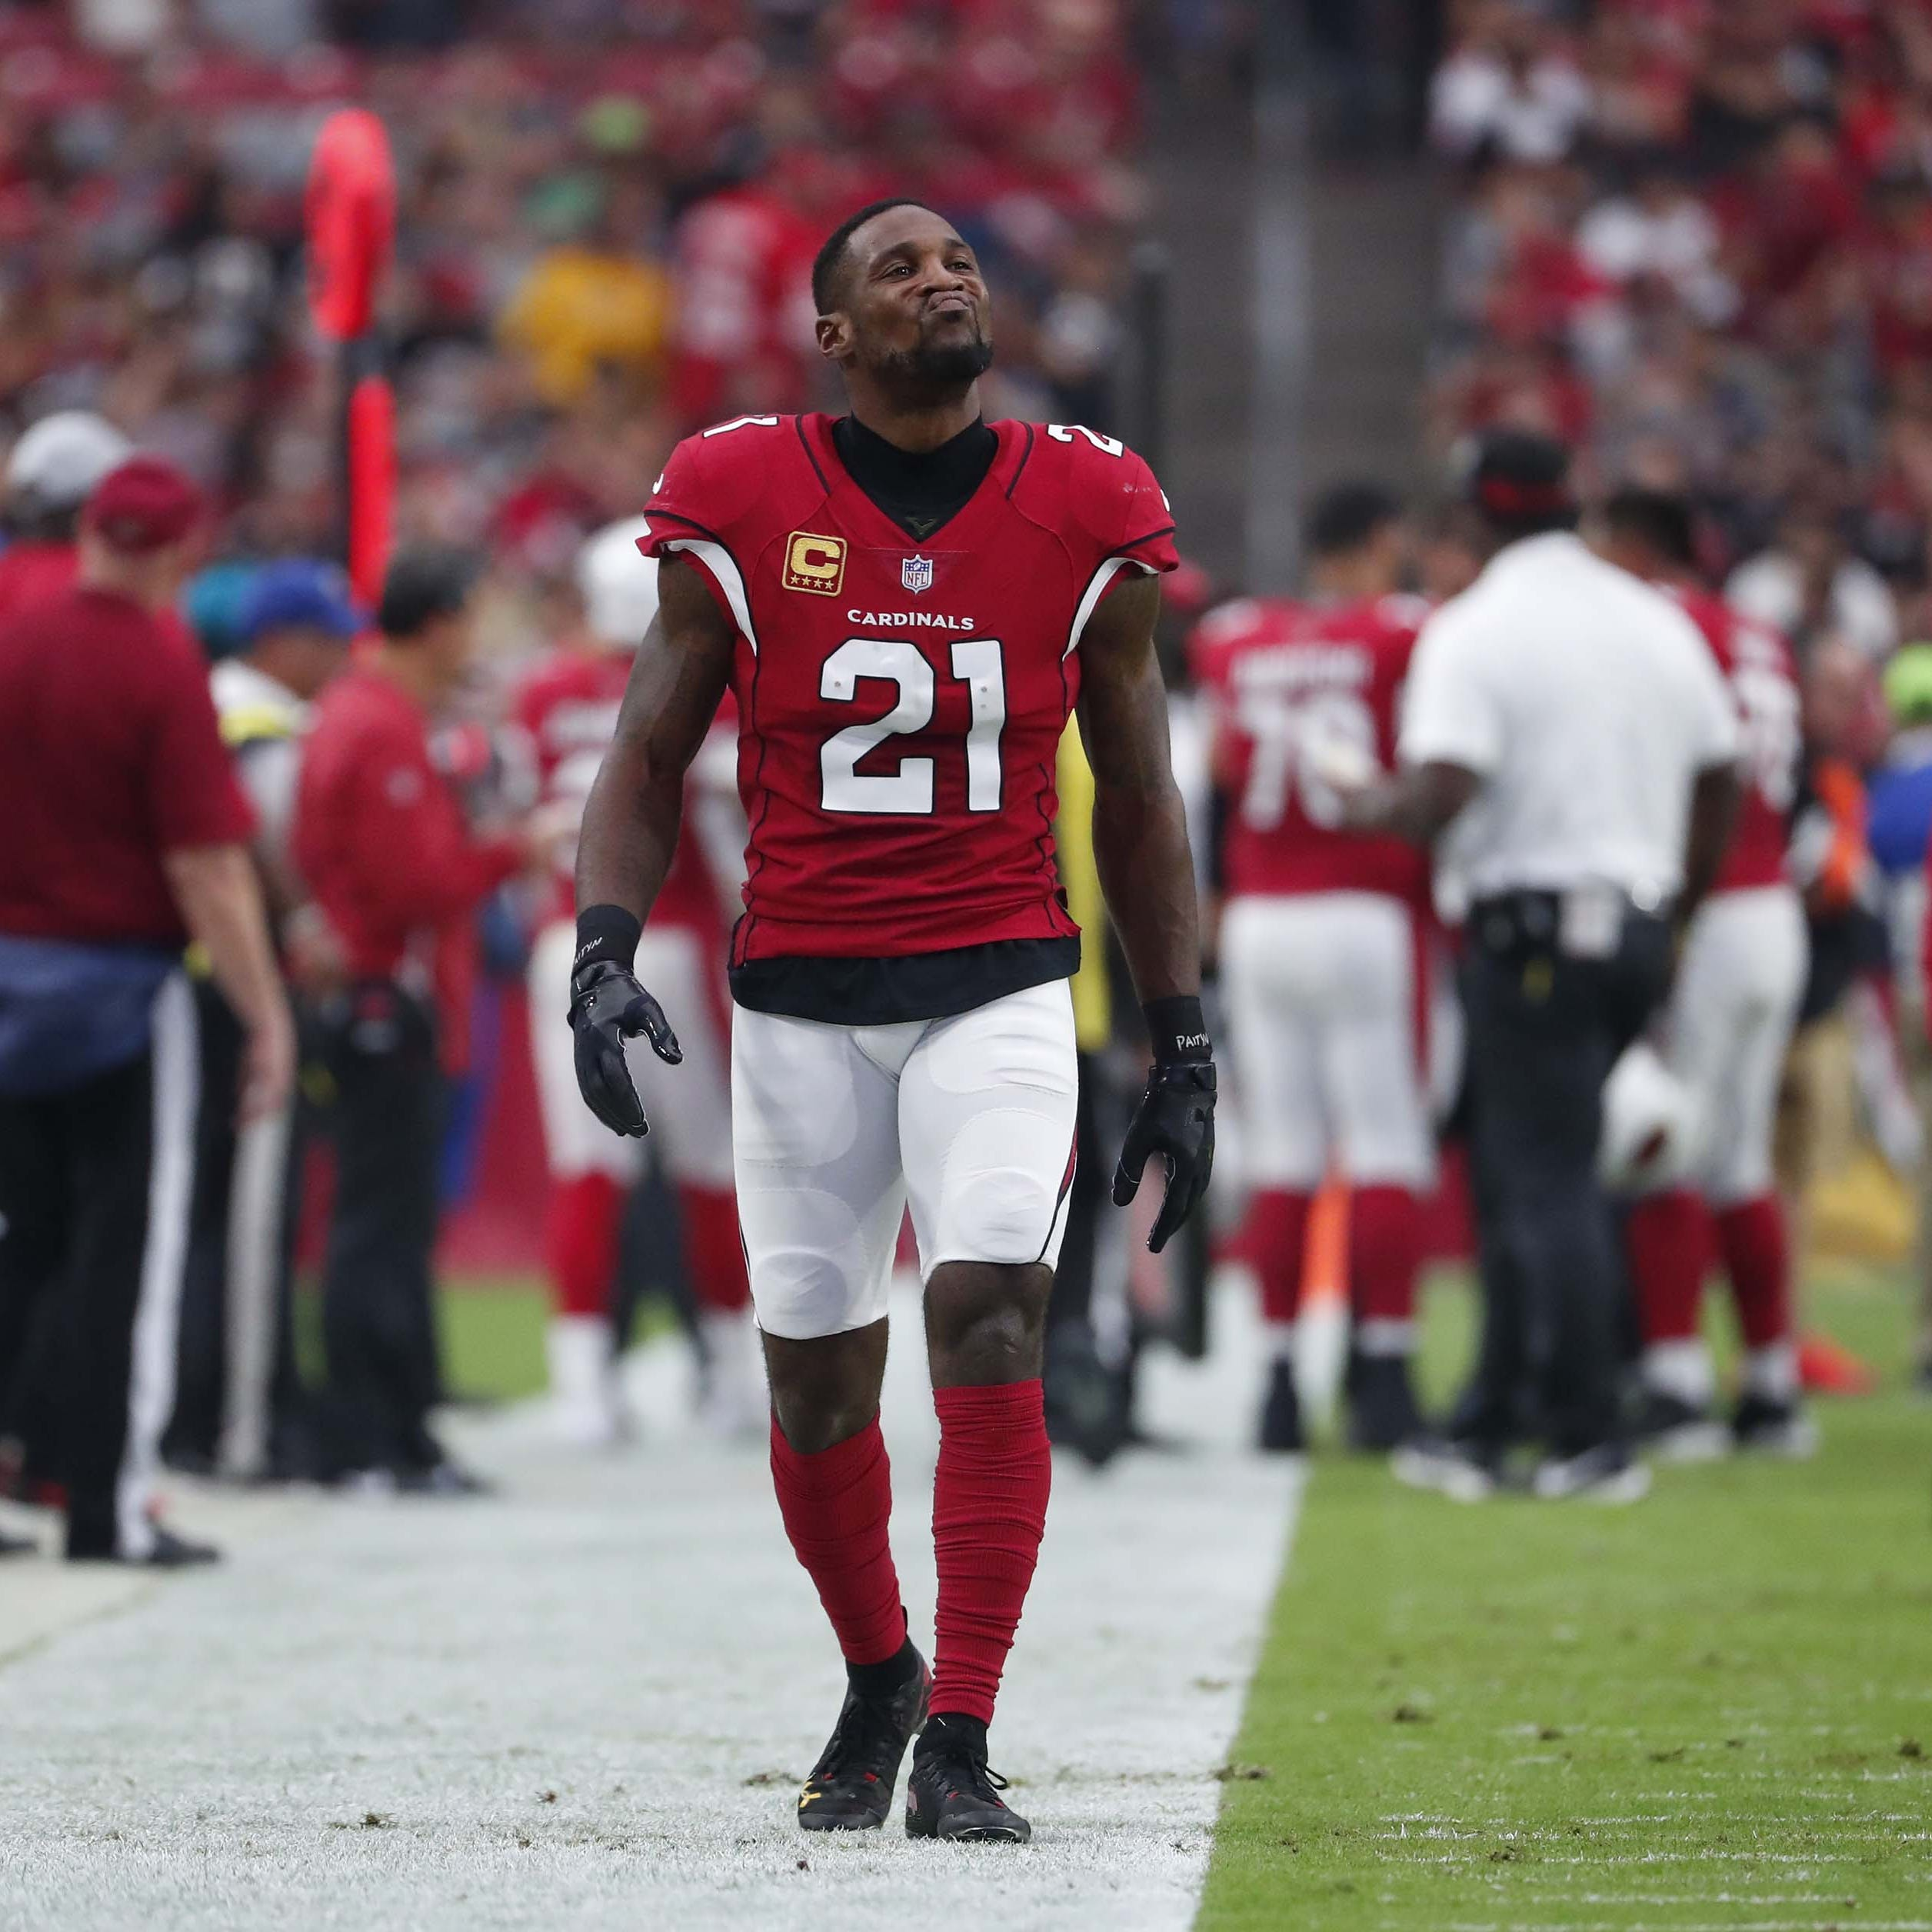 What's going on with Arizona Cardinals cornerback Patrick Peterson?